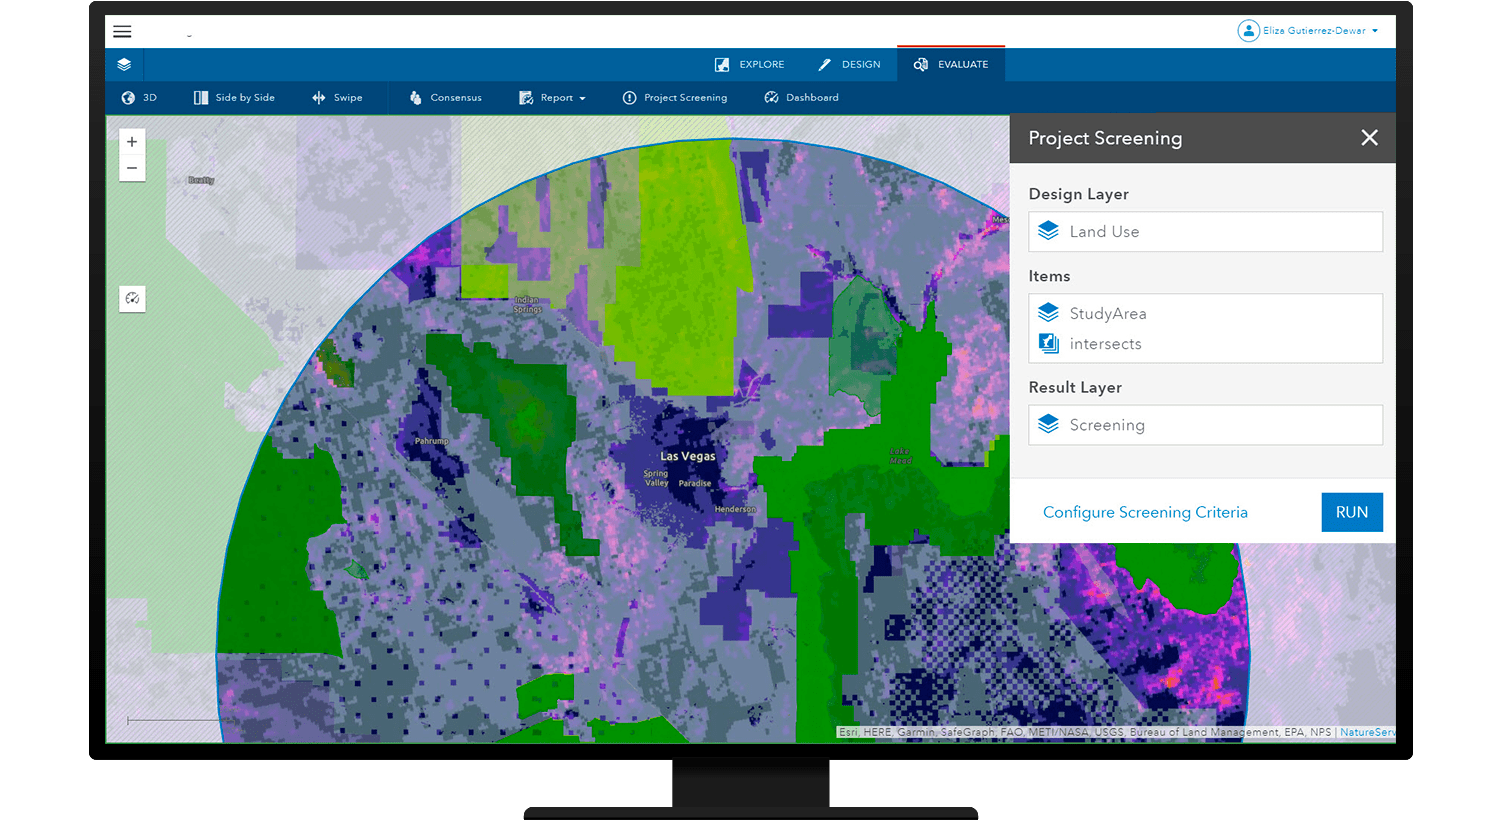 Monitor displaying a multicolored digital map with a popup box showing the project screening option in ArcGIS GeoPlanner